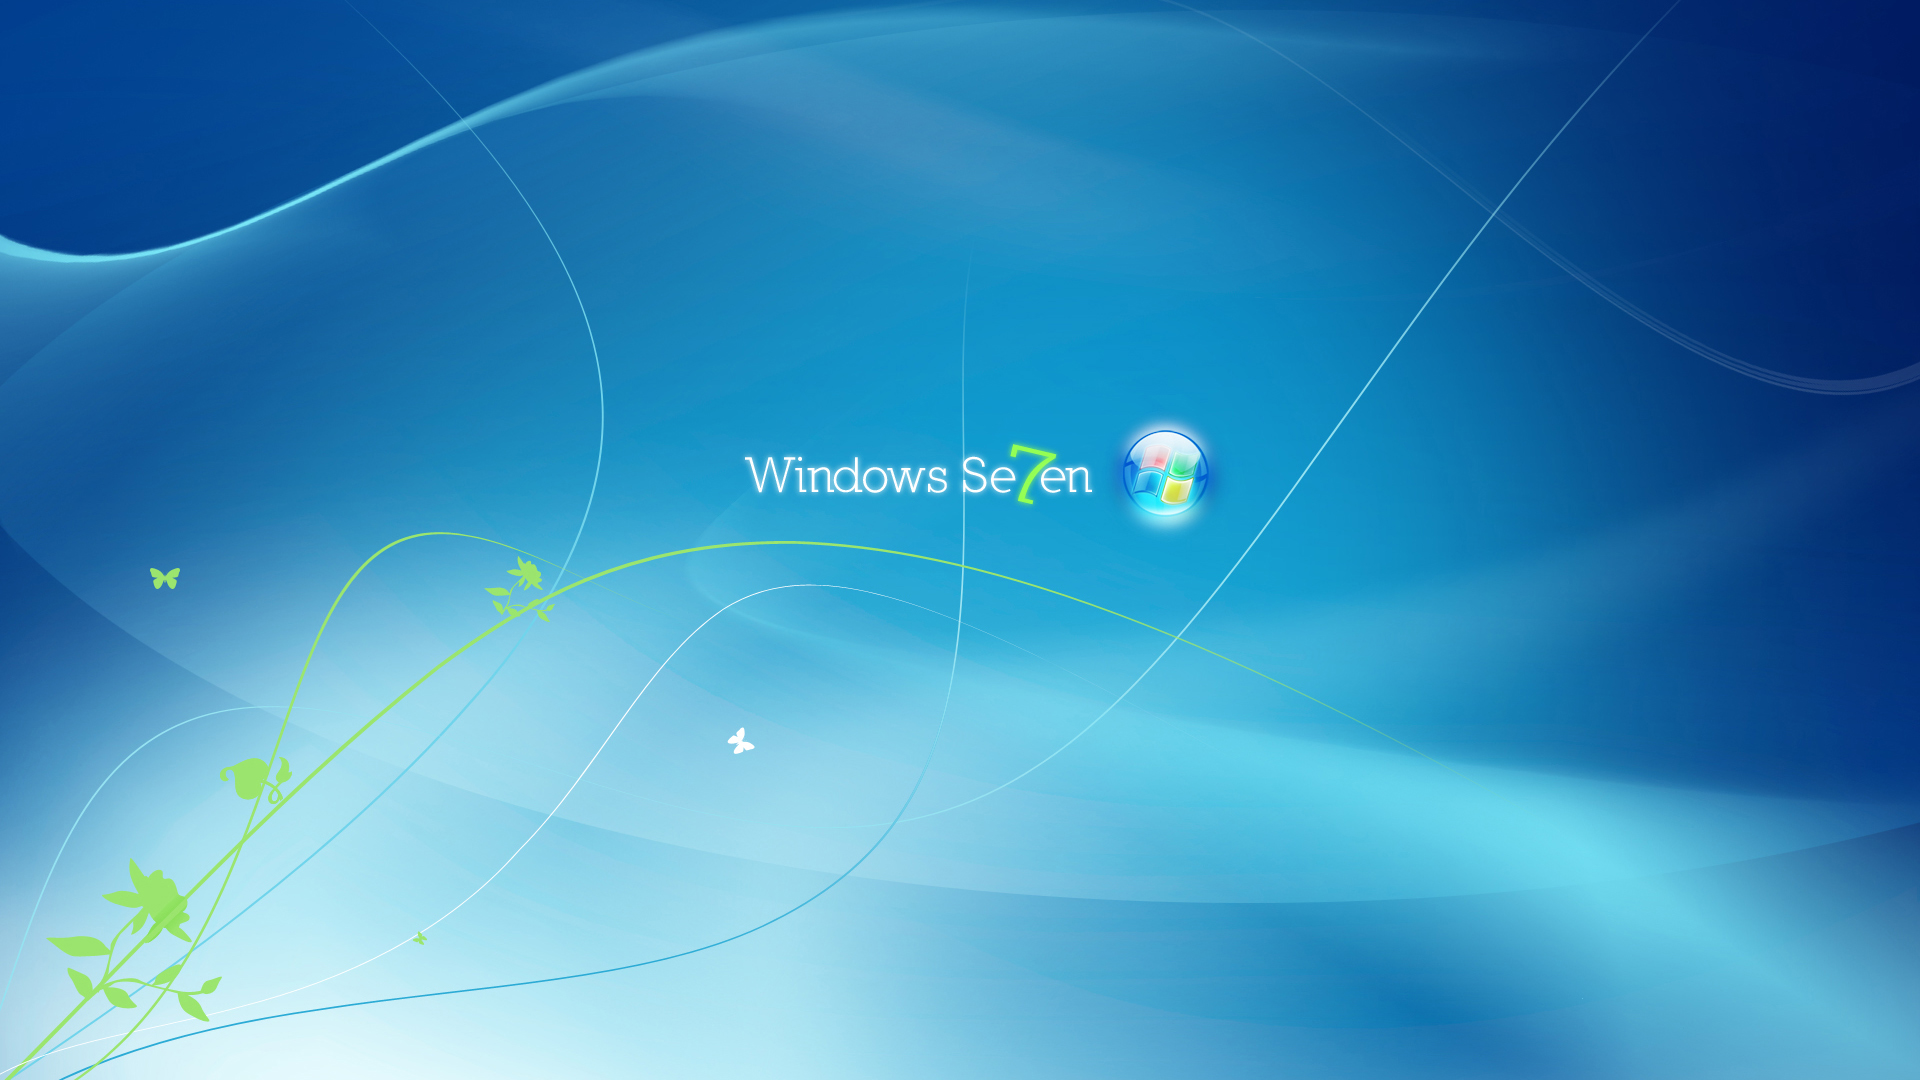 Windows Seven HD 1080p Wallpapers | HD Wallpapers